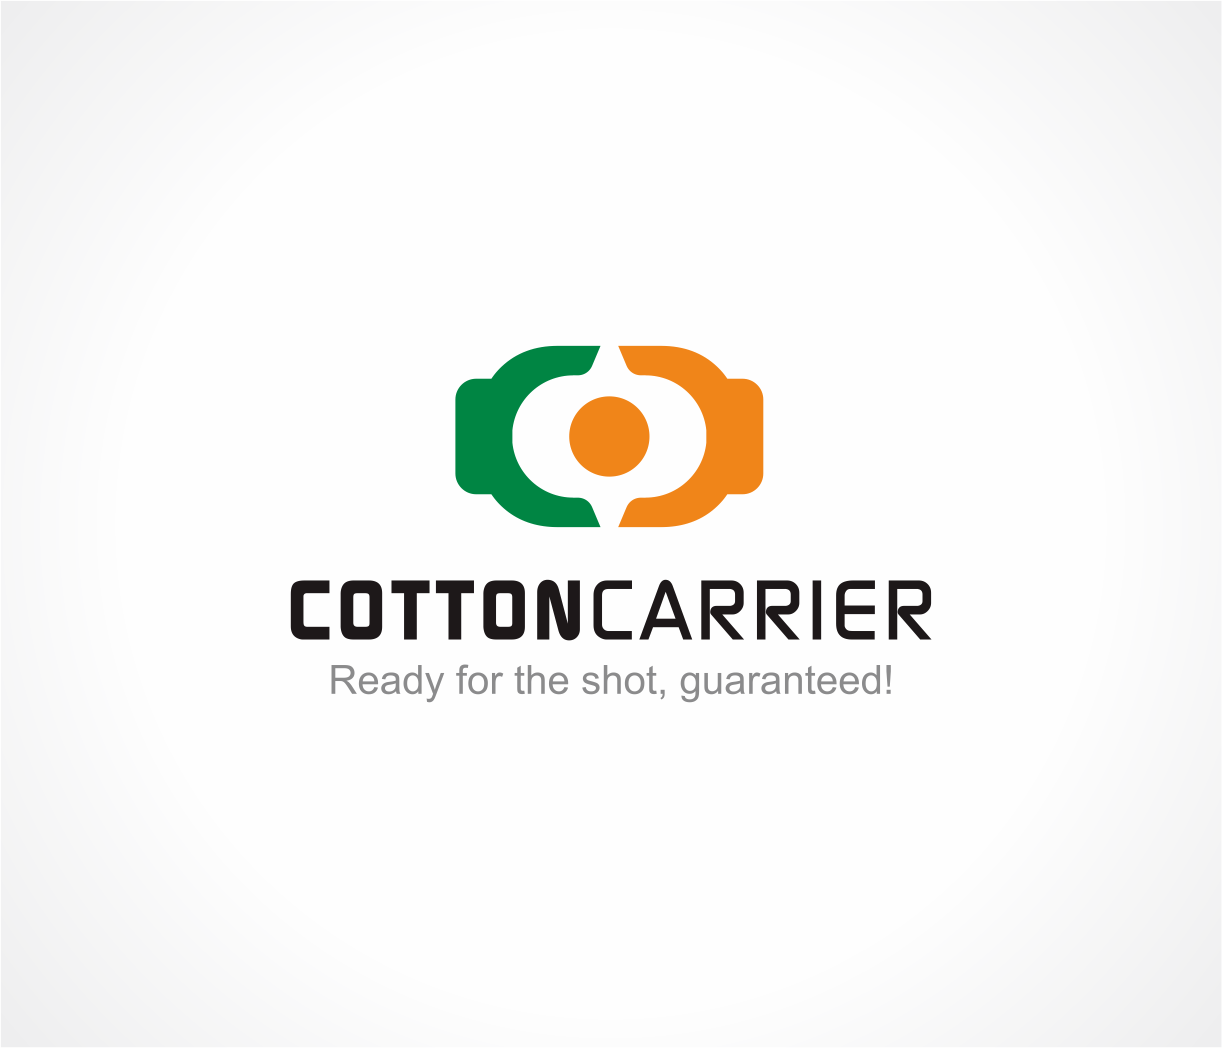 Logo Design by Armada Jamaluddin - Entry No. 78 in the Logo Design Contest Cotton Carrier Camera Systems Logo Design.